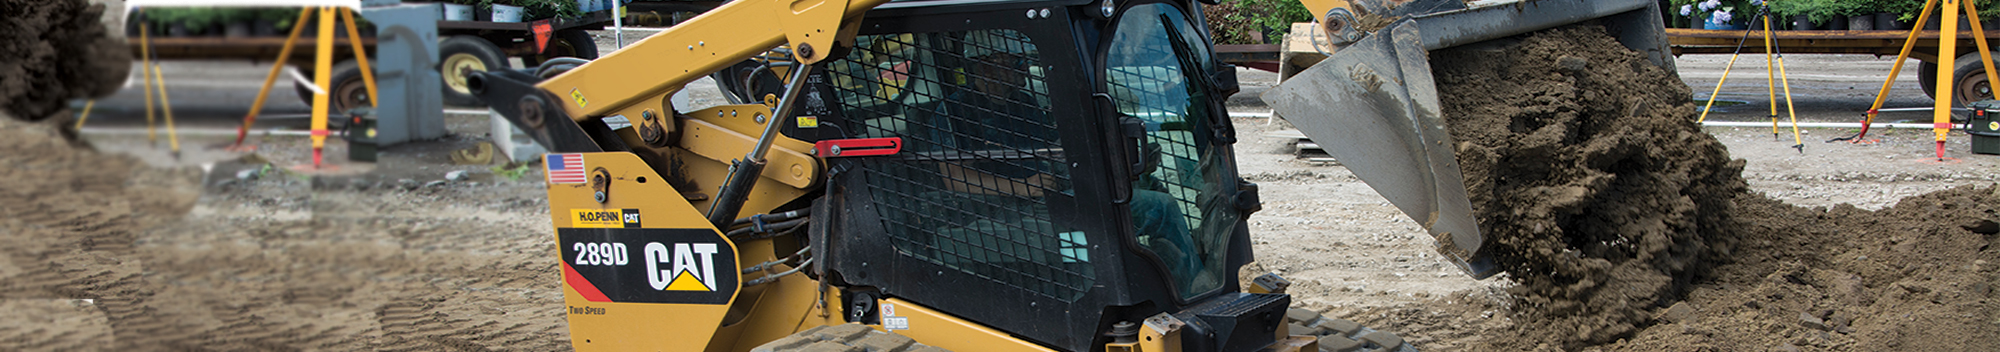 Heavy Construction Equipment Rentals - New York & CT | H O  Penn